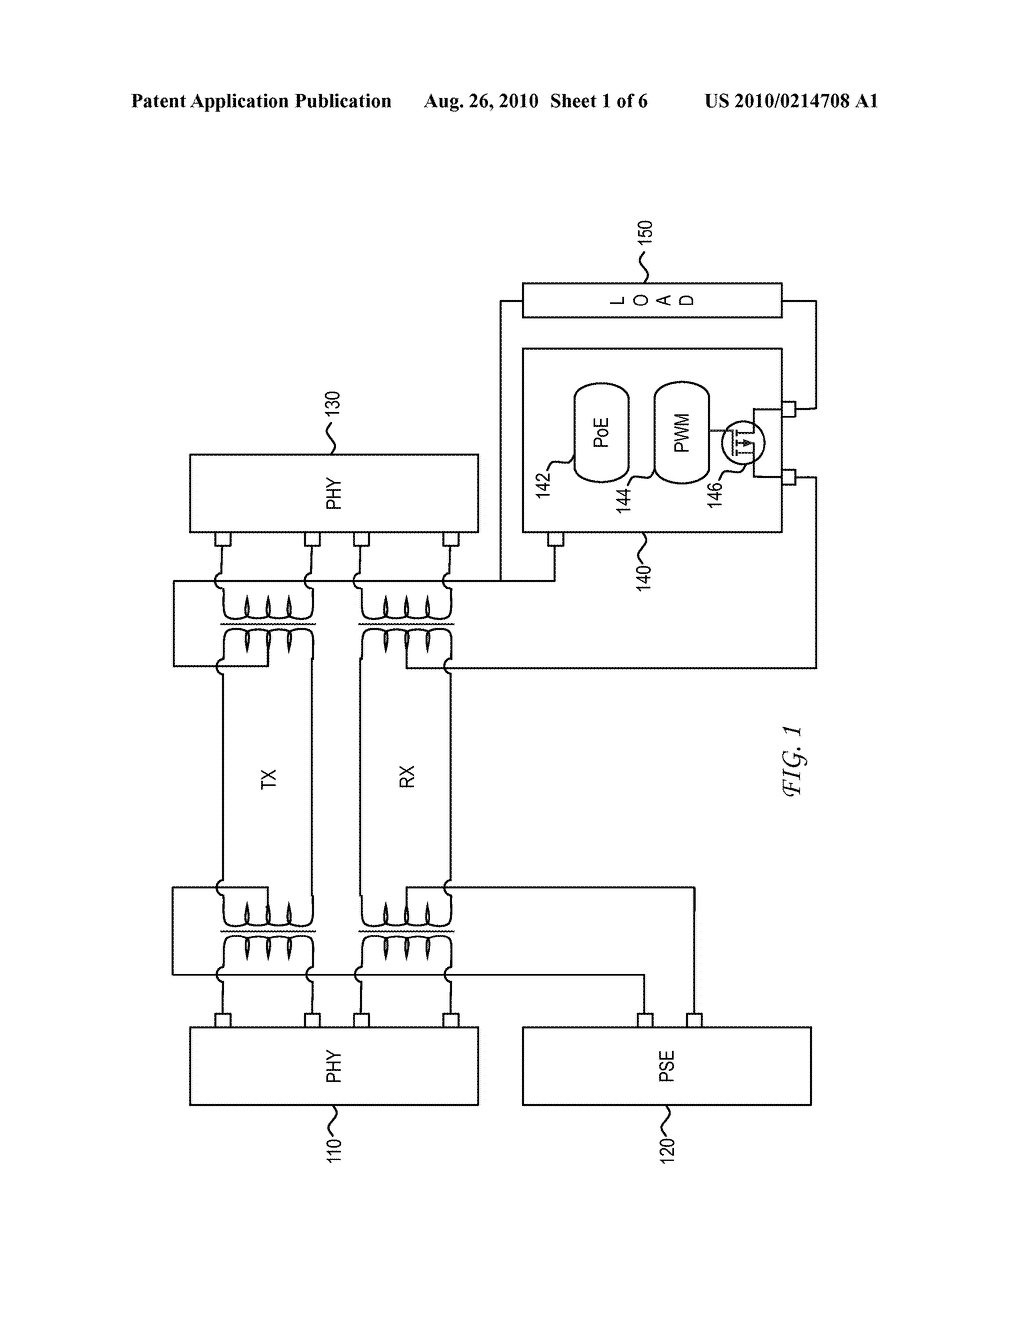 System and Method for Using a PHY to Locate a Thermal Signature in a Cable Plant for Diagnostic, Enhanced, and Higher Power Applications - diagram, schematic, and image 02